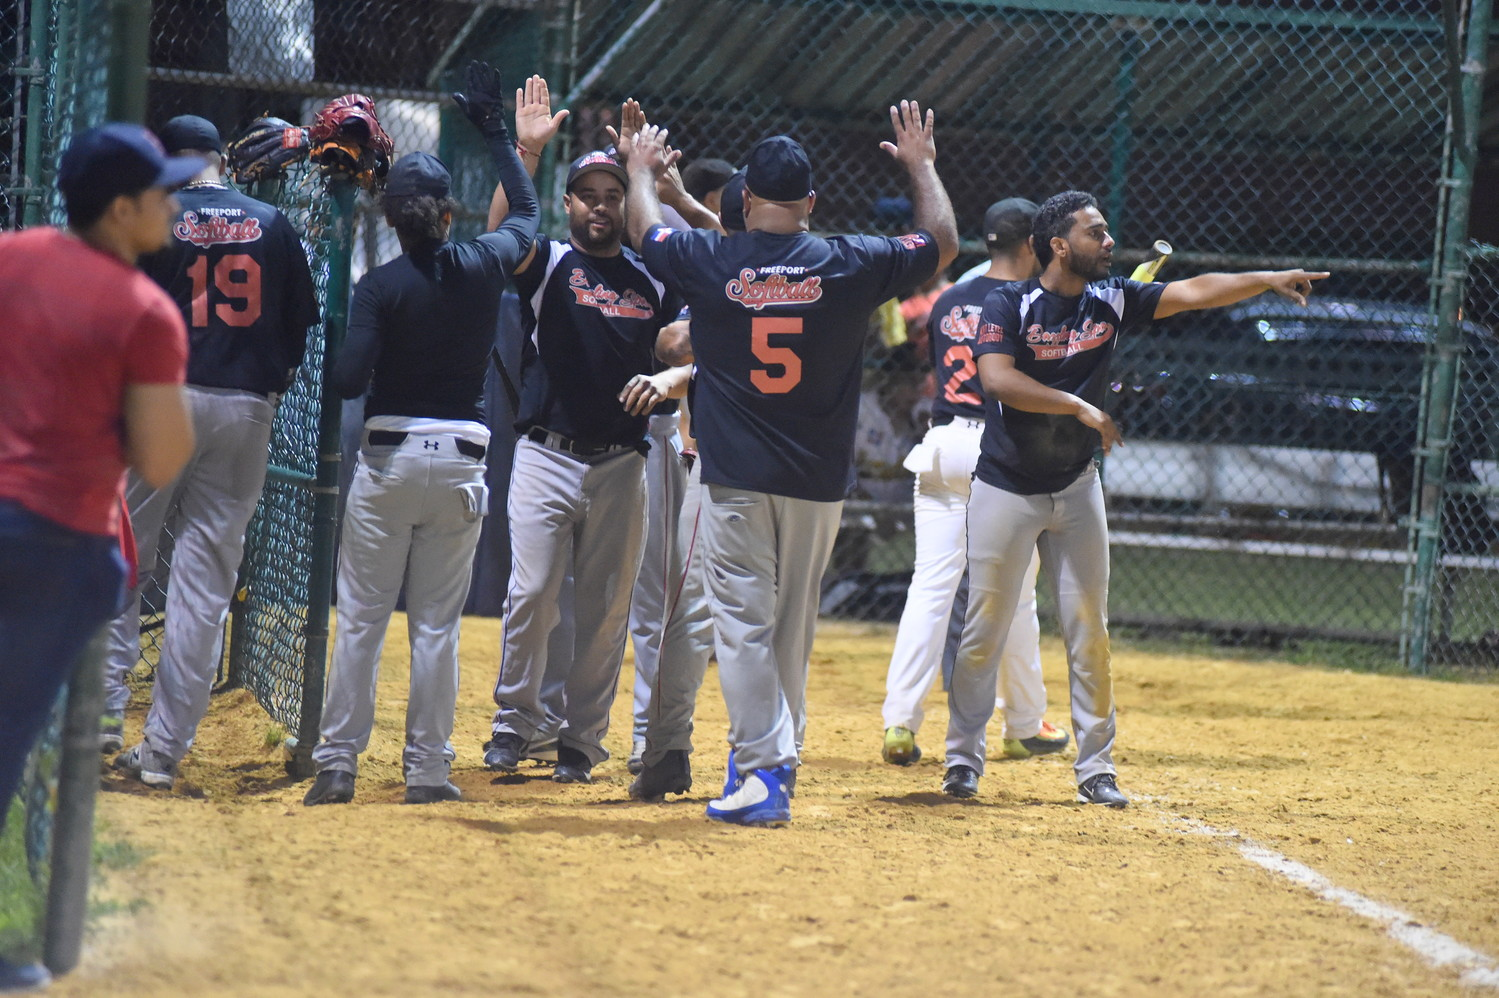 After a win over Metro West Water, Dazzling Spa players cheered and congratulated one another at Randall Park in Freeport last month.